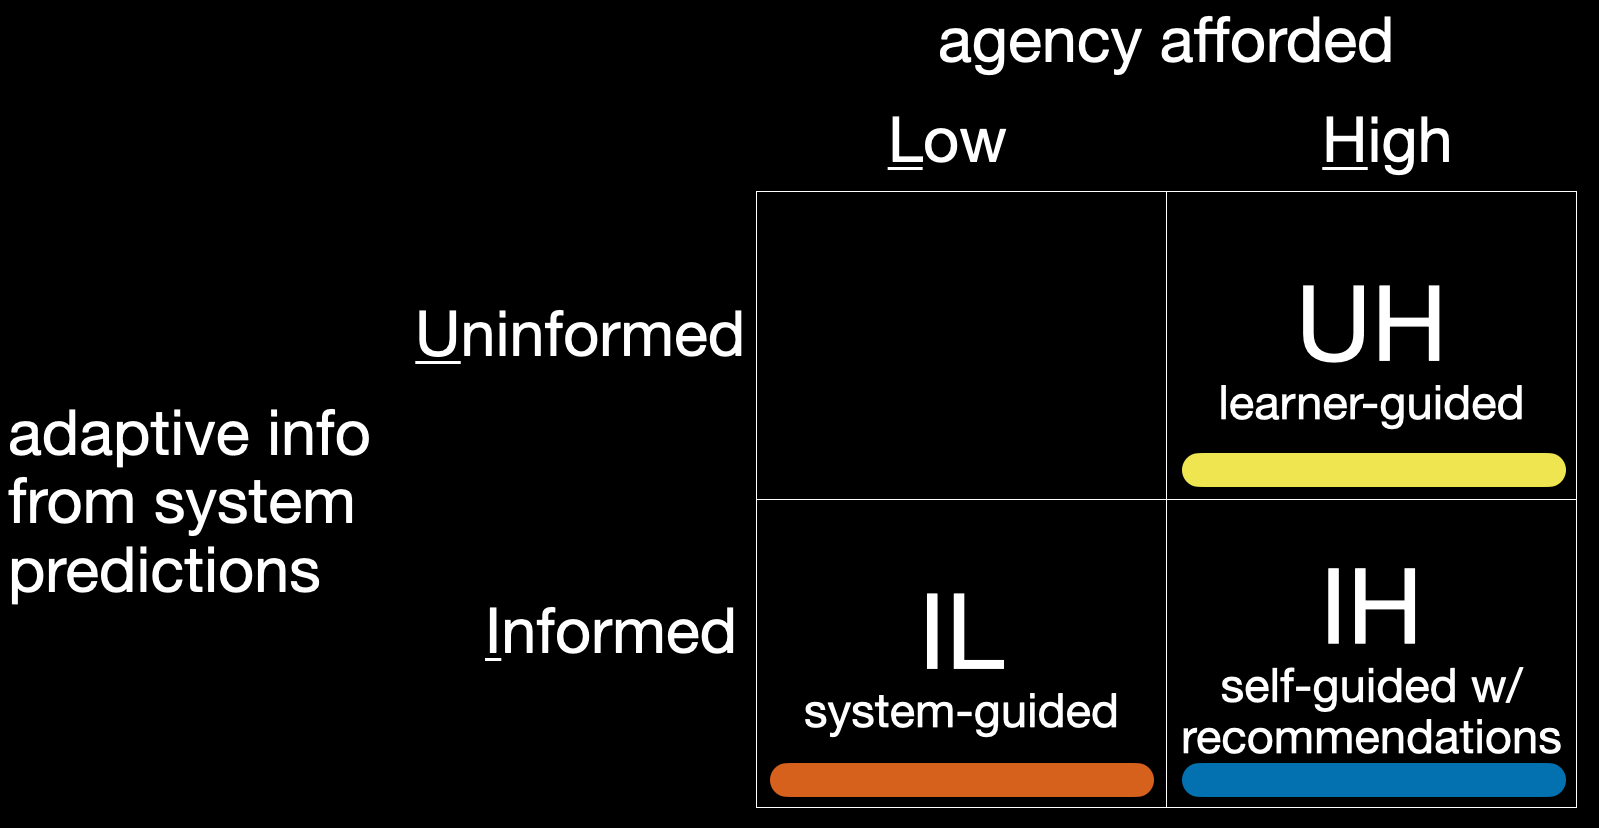 quadrant of Codeitz versions on dimensions of agency afforded (low/high) and adaptive info from system (uninformed/informed)